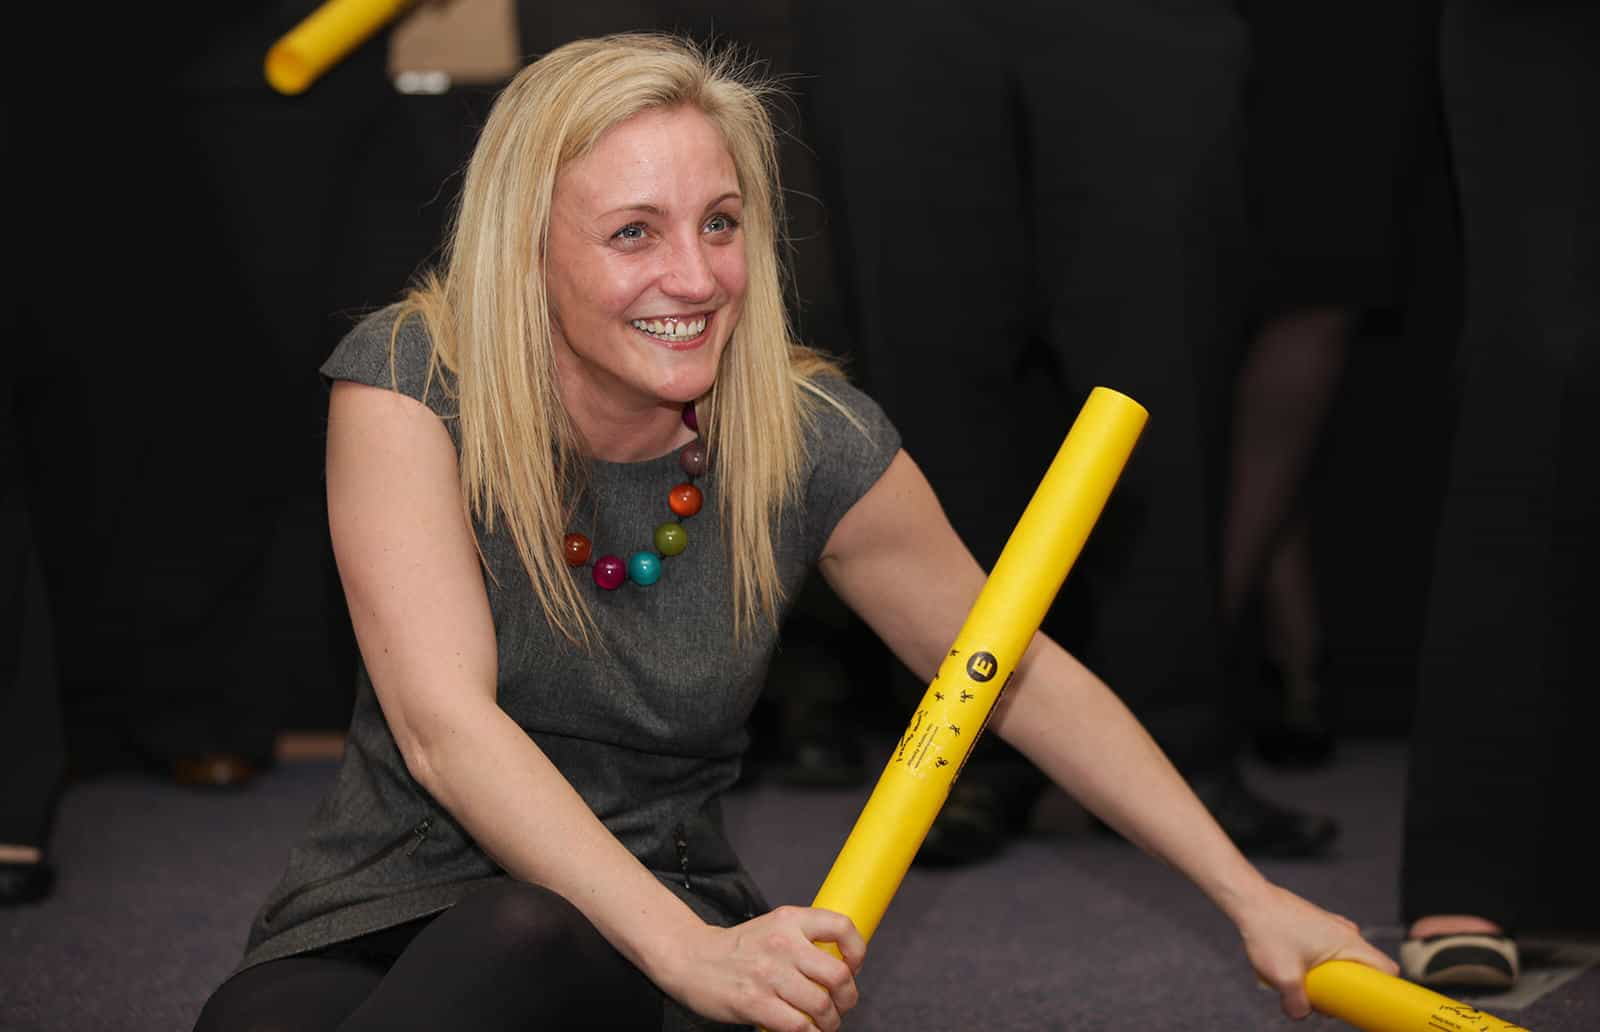 Boomwhackers small team activity